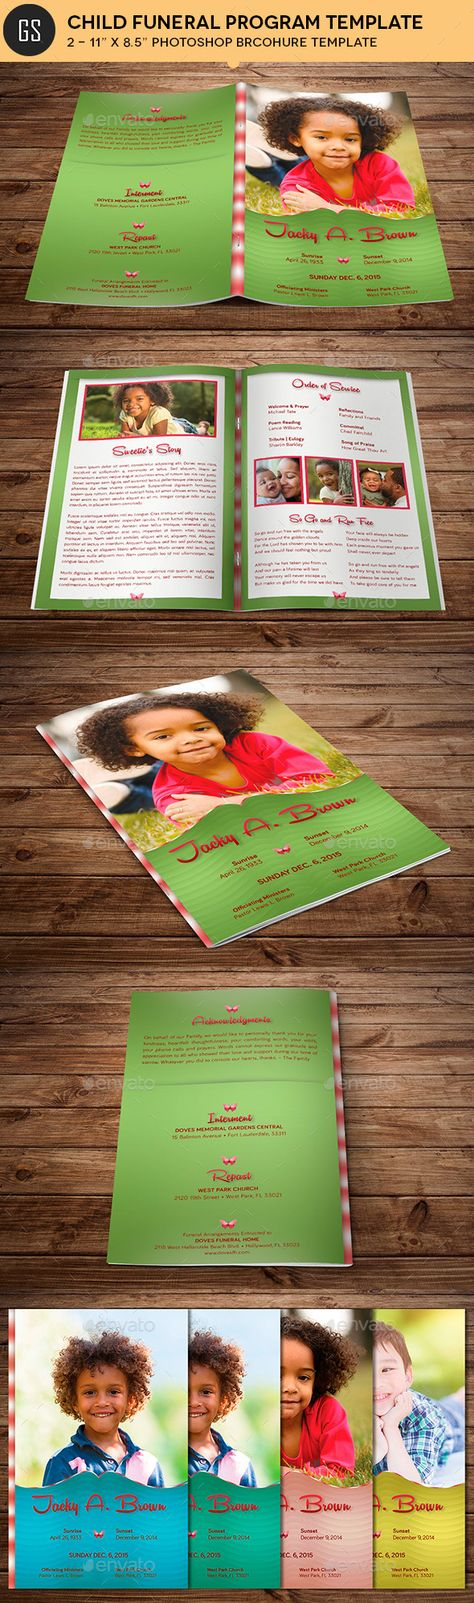 Child funeral program template Funeral Memorial Order of Service - child funeral program template